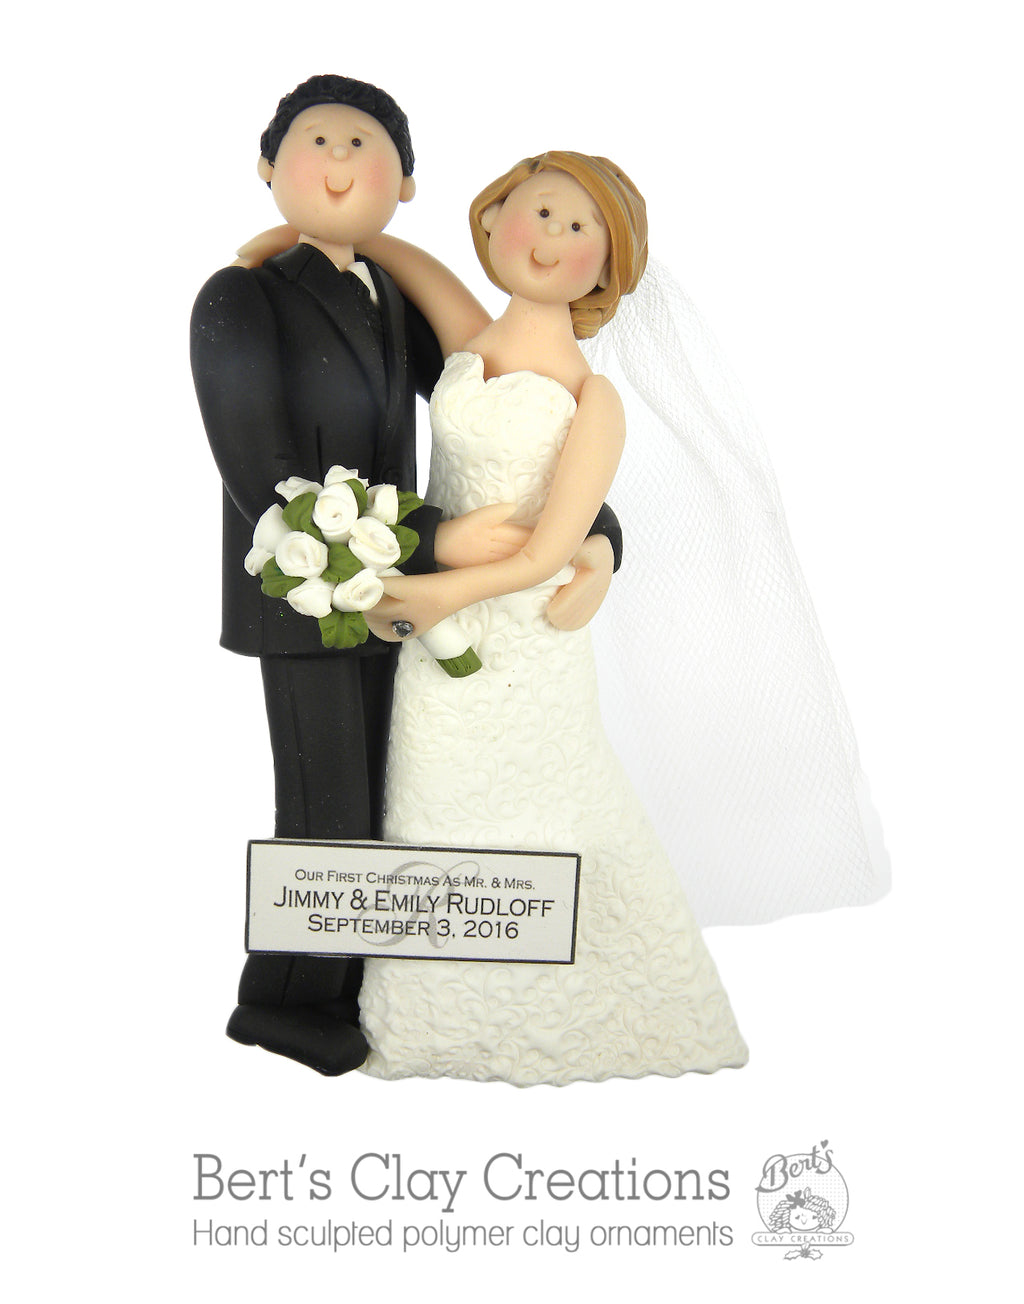 BASIC Bride and Groom Ornament - Bert's Clay Creations